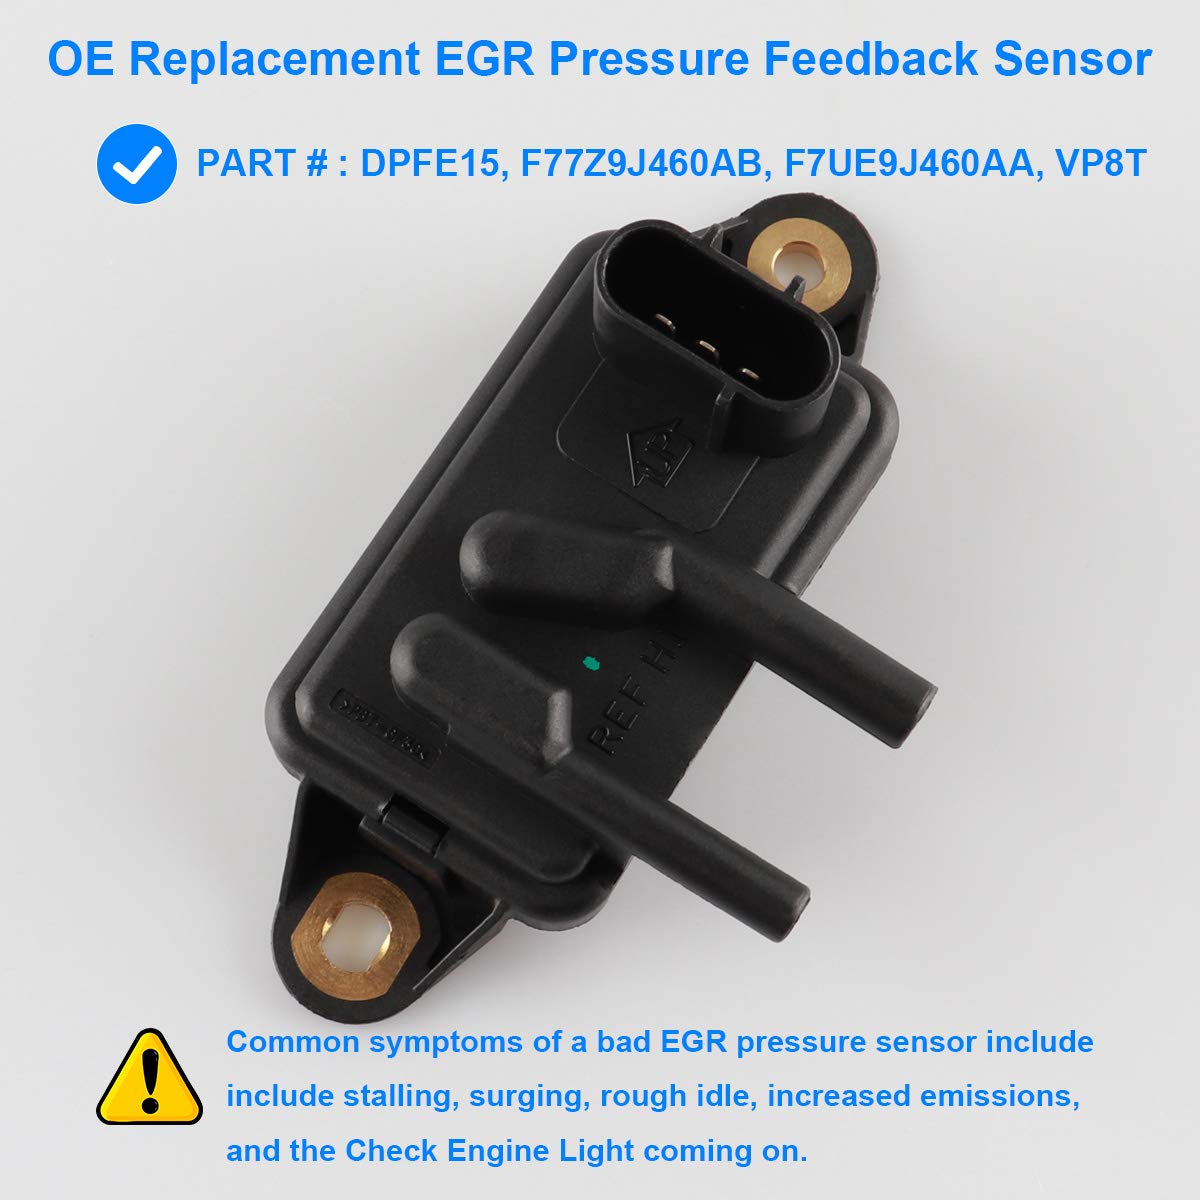 EGR Exhaust Gas Recirculation Pressure Feedback Sensor, DPFE Sensor  Replaces DPFE15, F77Z9J460AB, F7UE9J460AA, VP8T for Ford Expedition  Explorer